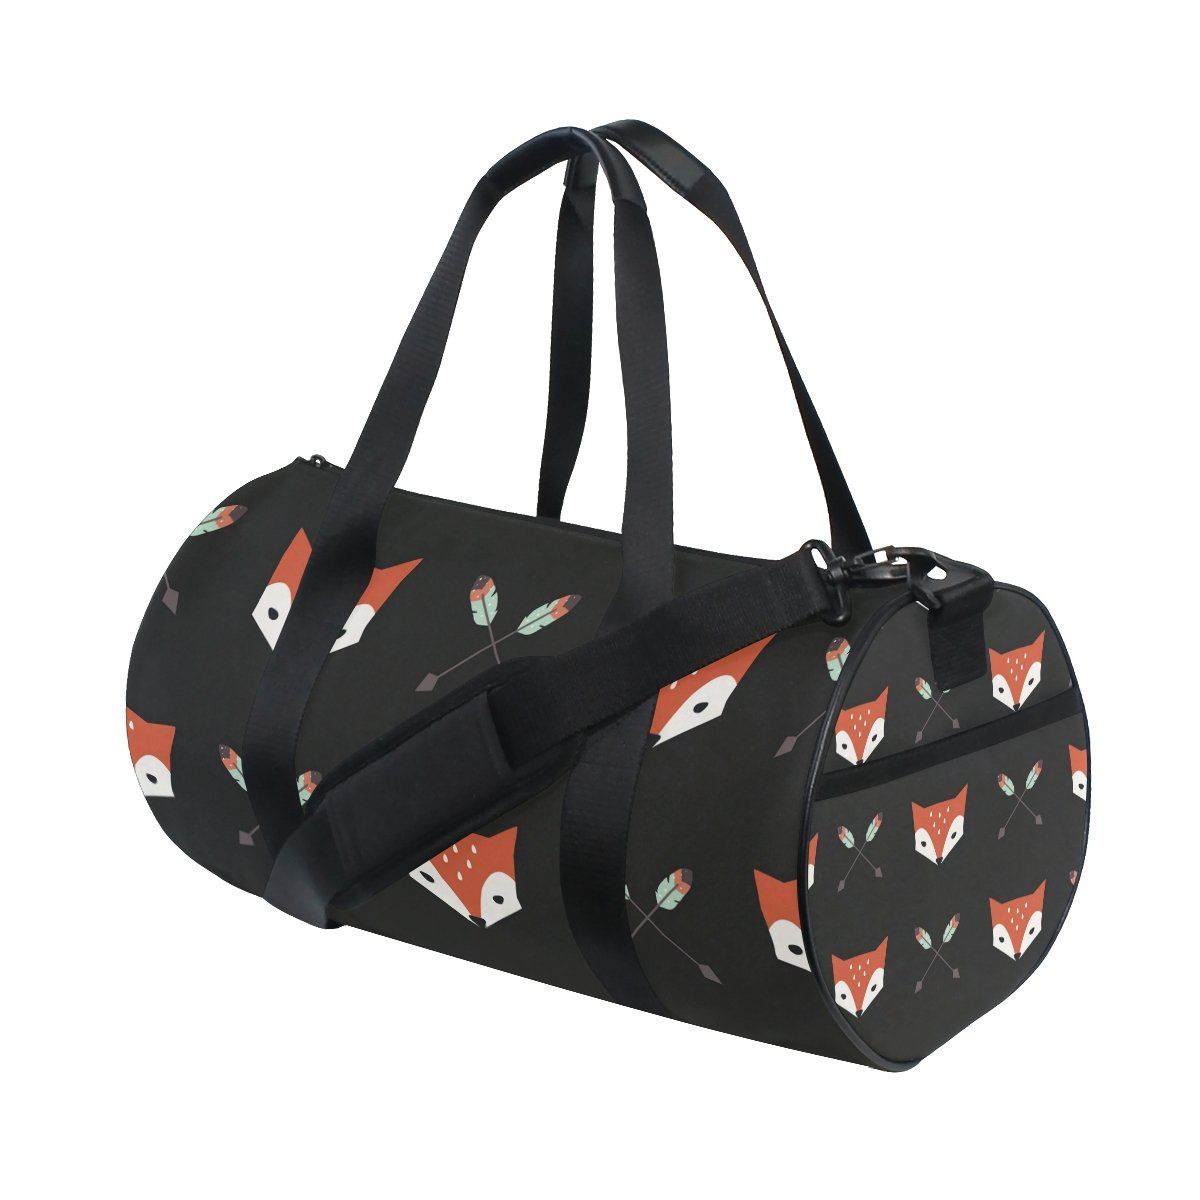 Fox And Arrows Travel Duffle Bag Sports Luggage with Backpack Tote Gym Bag for Man and Women